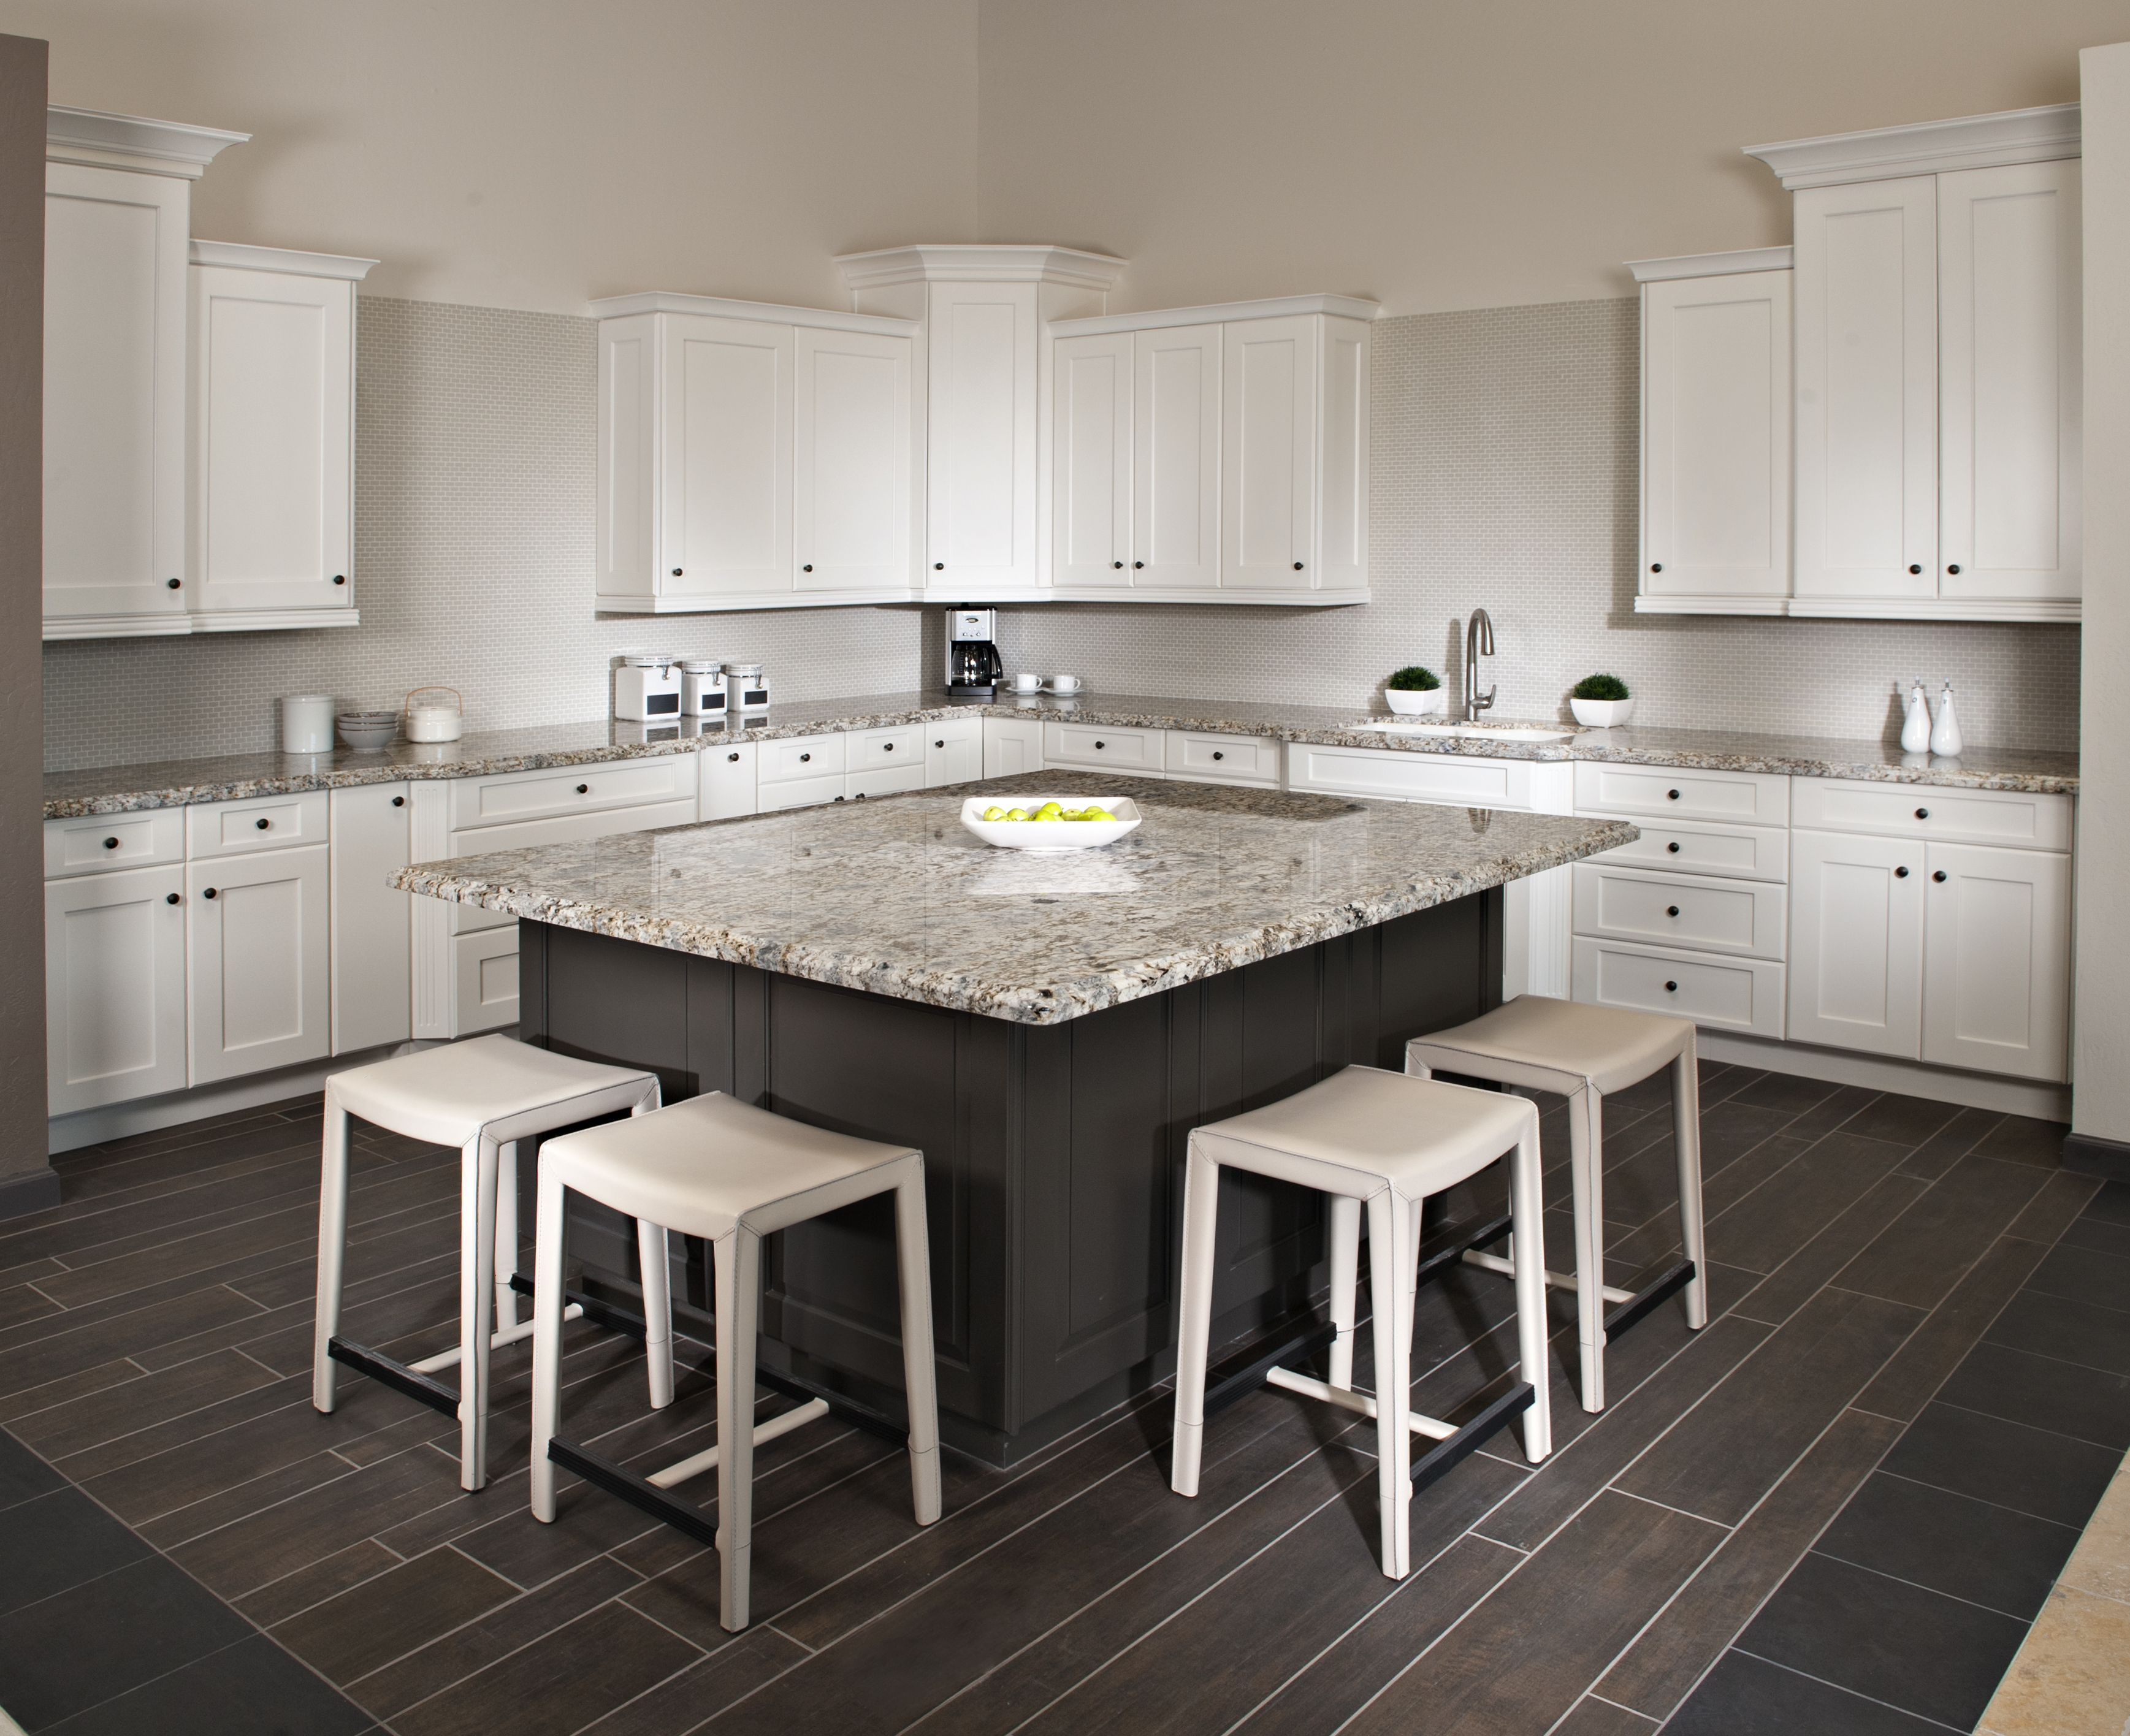 Bedrosians tile and stone featuring our barrique fonce